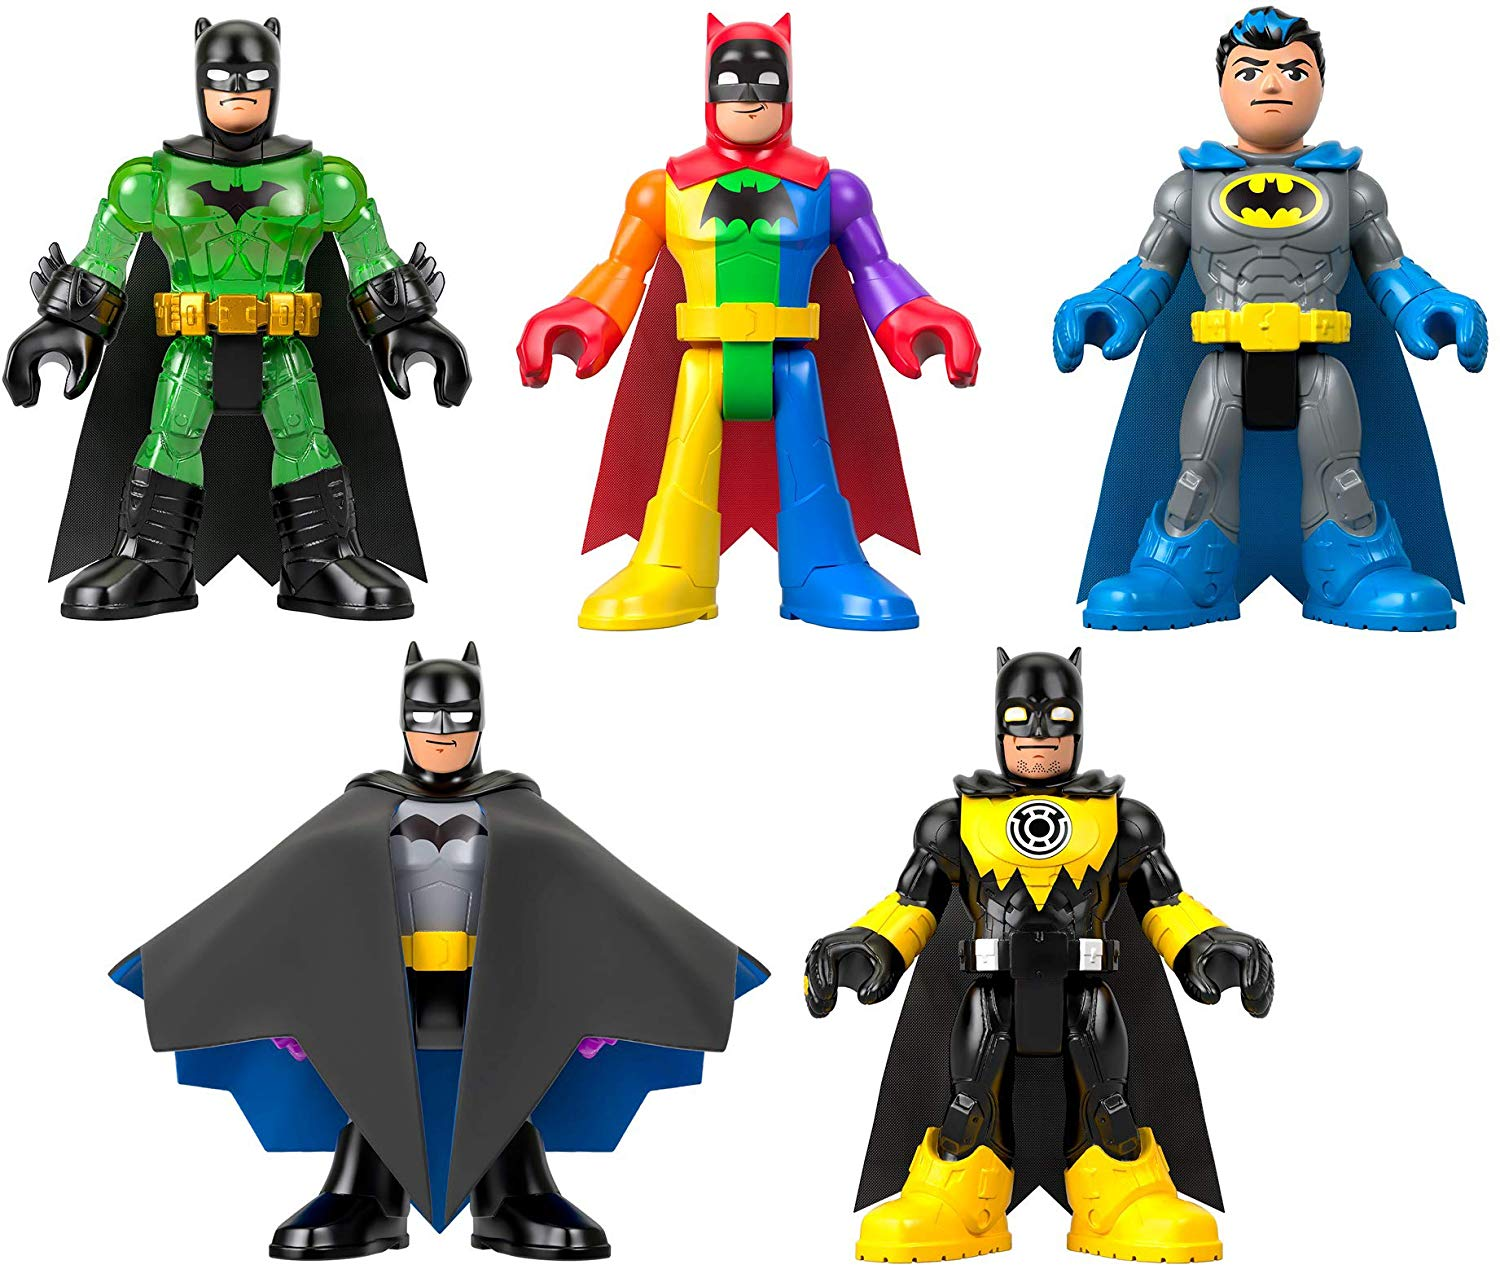 Fisher-Price Imaginext DC Super Friends Batman 80th Anniversary Collection Box Set Pre-Orders